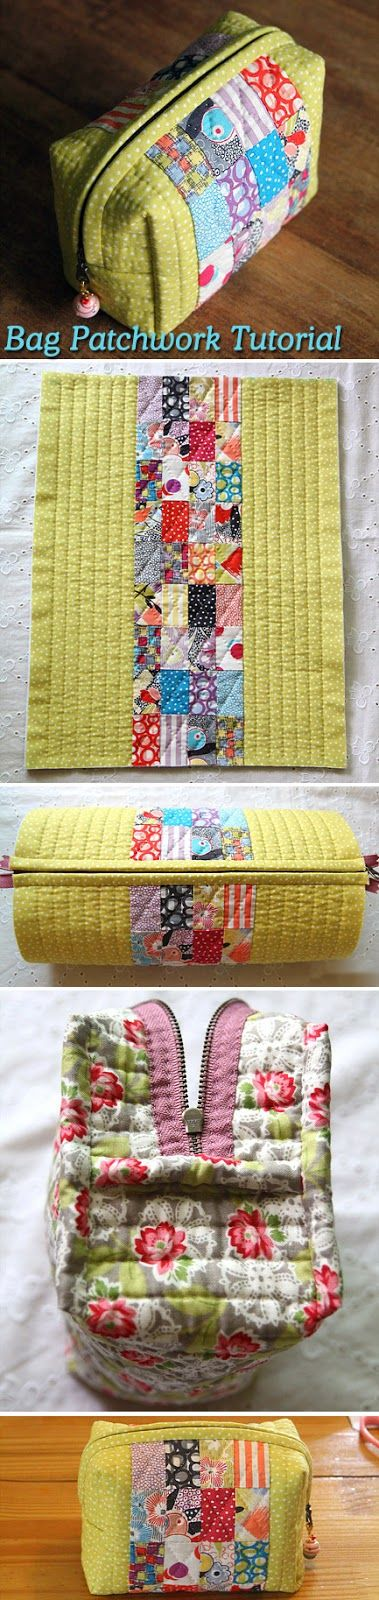 DIY tutorial. http://www.handmadiya.com/2015/08/small-bag-of-patchwork-diy-tutorial.html